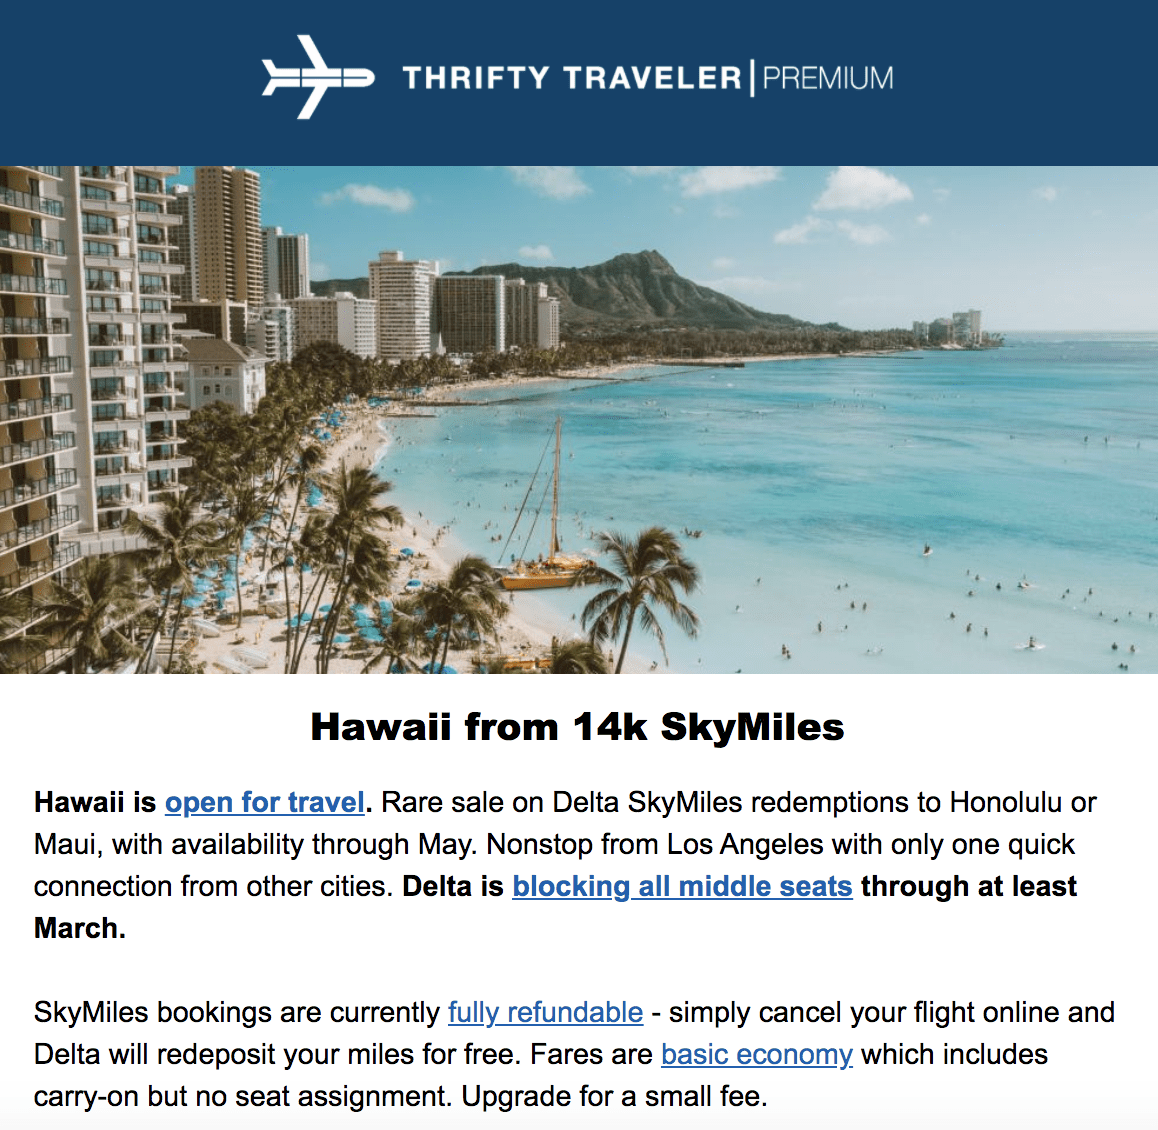 thrifty traveler premium deal to hawaii